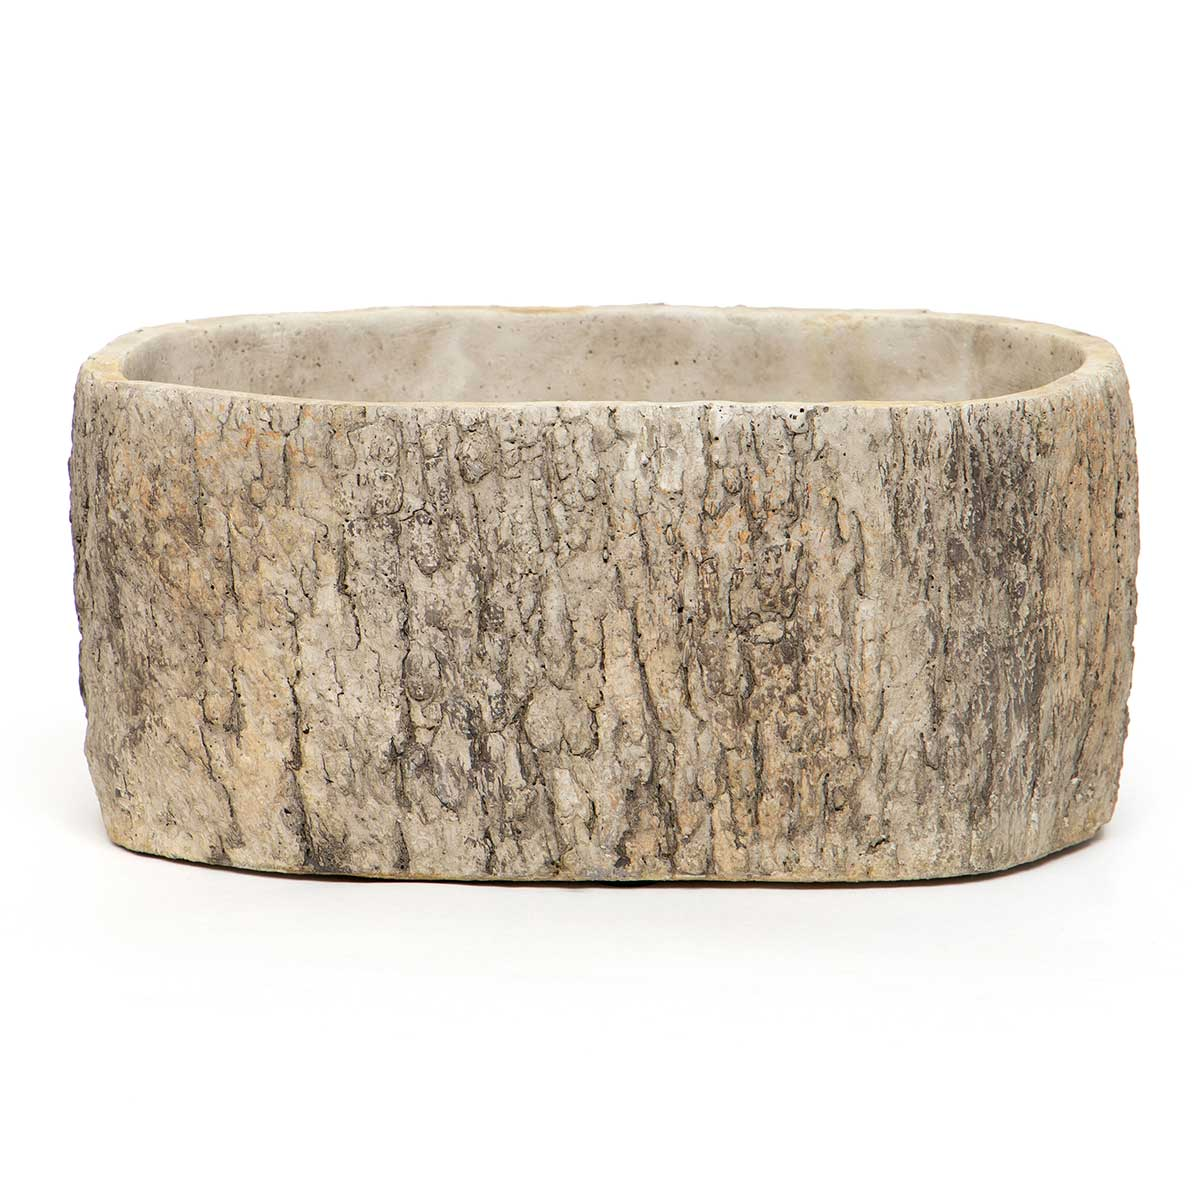 OVAL CONCRETE LOG POT